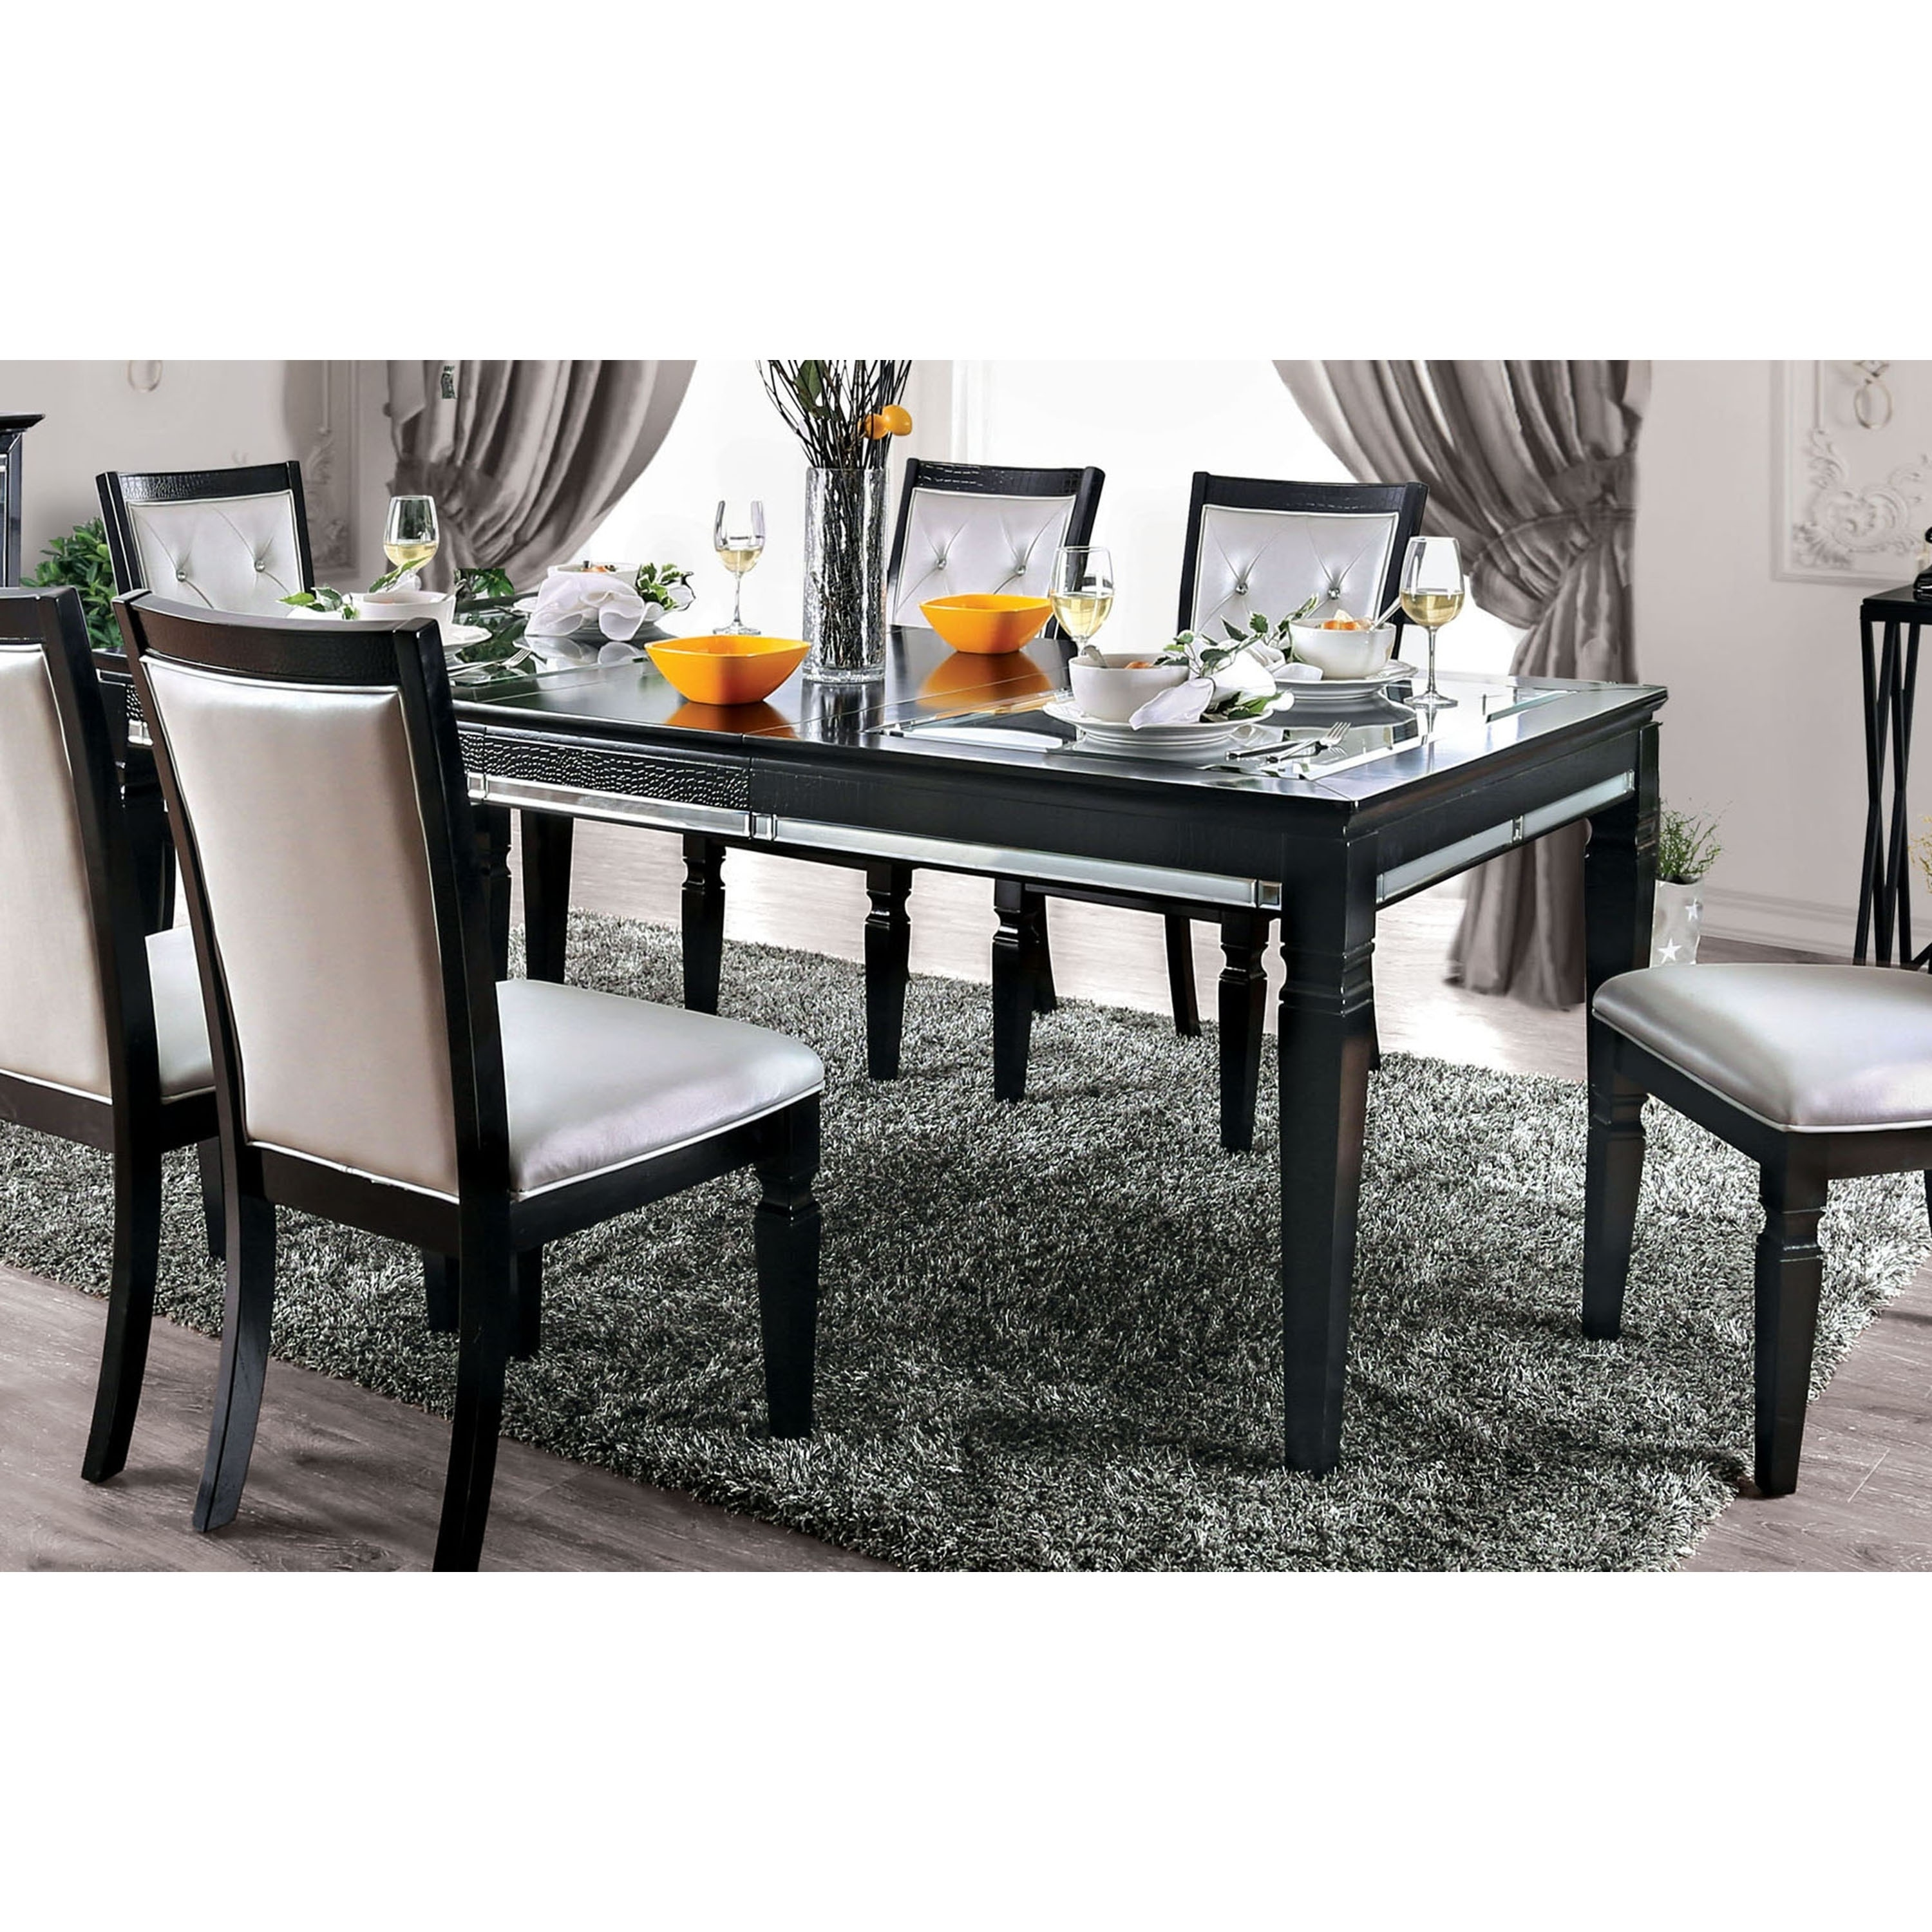 Silver Orchid Amann Contemporary 84 Inch Black Dining Table Overstock 27600014